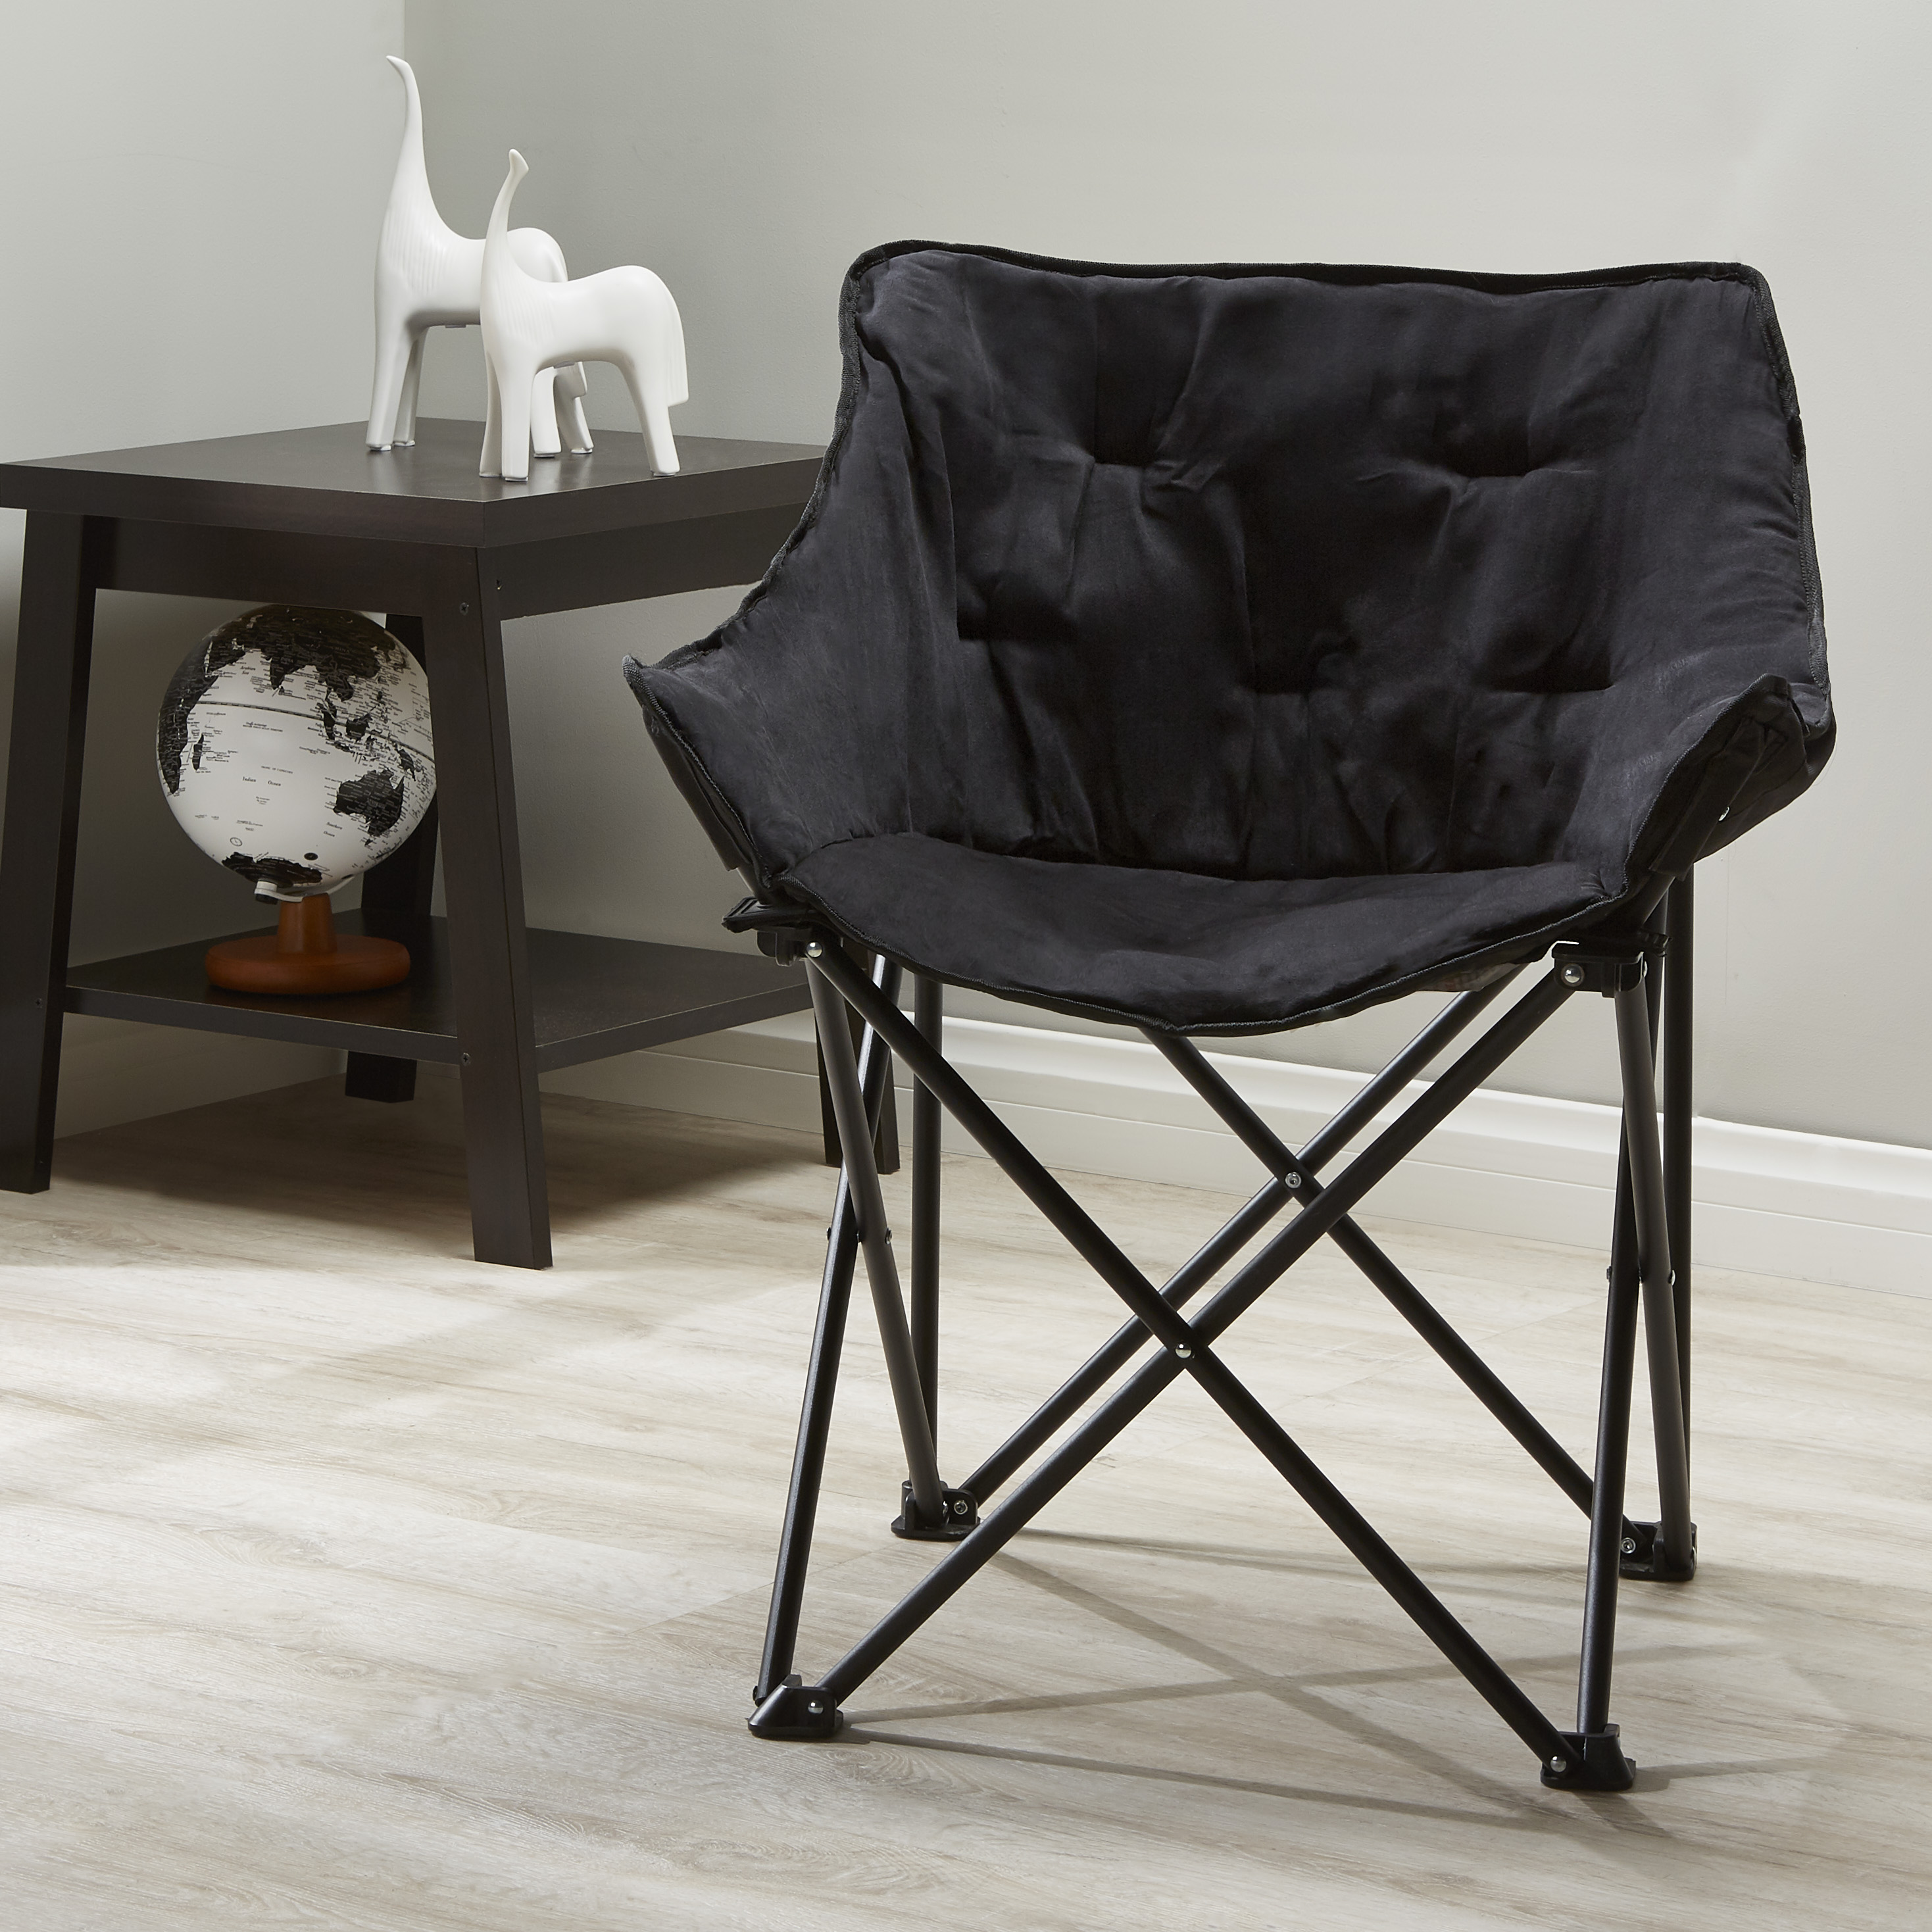 Mainstays Collapsible Square Chair, Black Microsuede